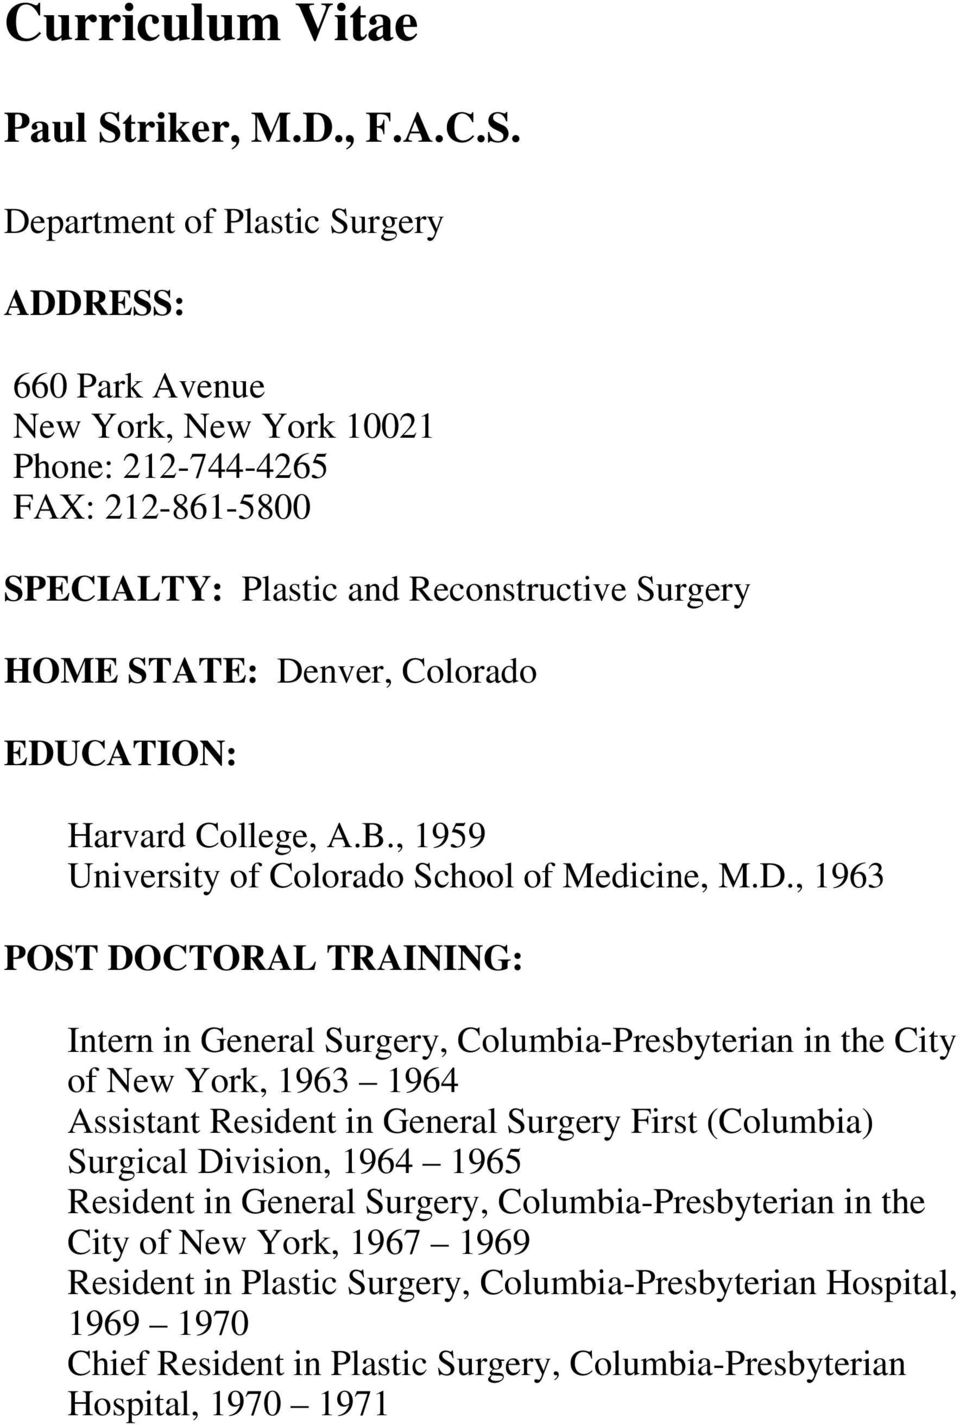 SPECIALTY: Plastic and Reconstructive Surgery  Harvard